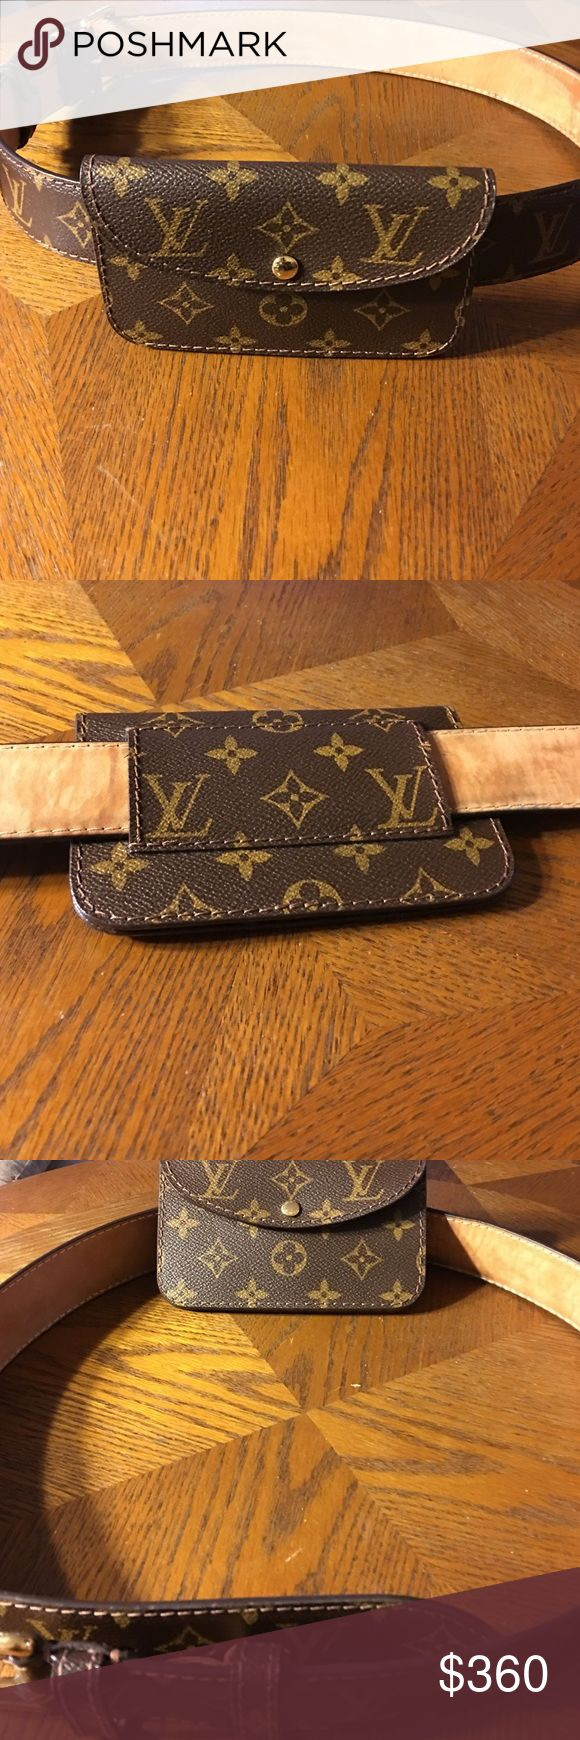 Louis Vuitton belt with pouch Louis Vuitton belt with pouch super cute and girly.  percent real size 40. Used but it's in great condition. Please No low ball offers and no trades  Louis Vuitton Accessories Belts